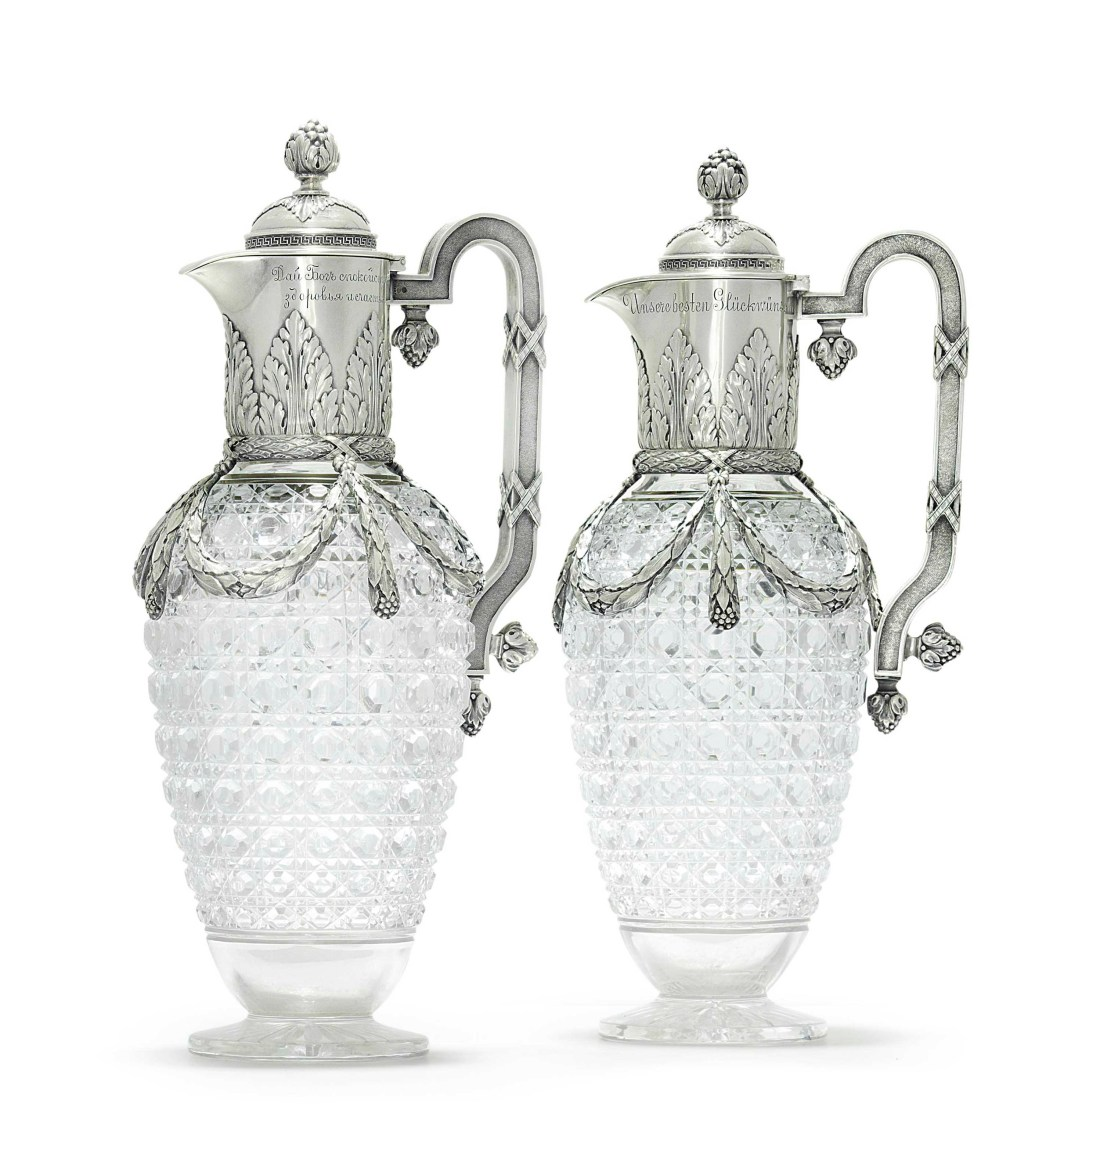 Pair of decanters. 1899-1908.